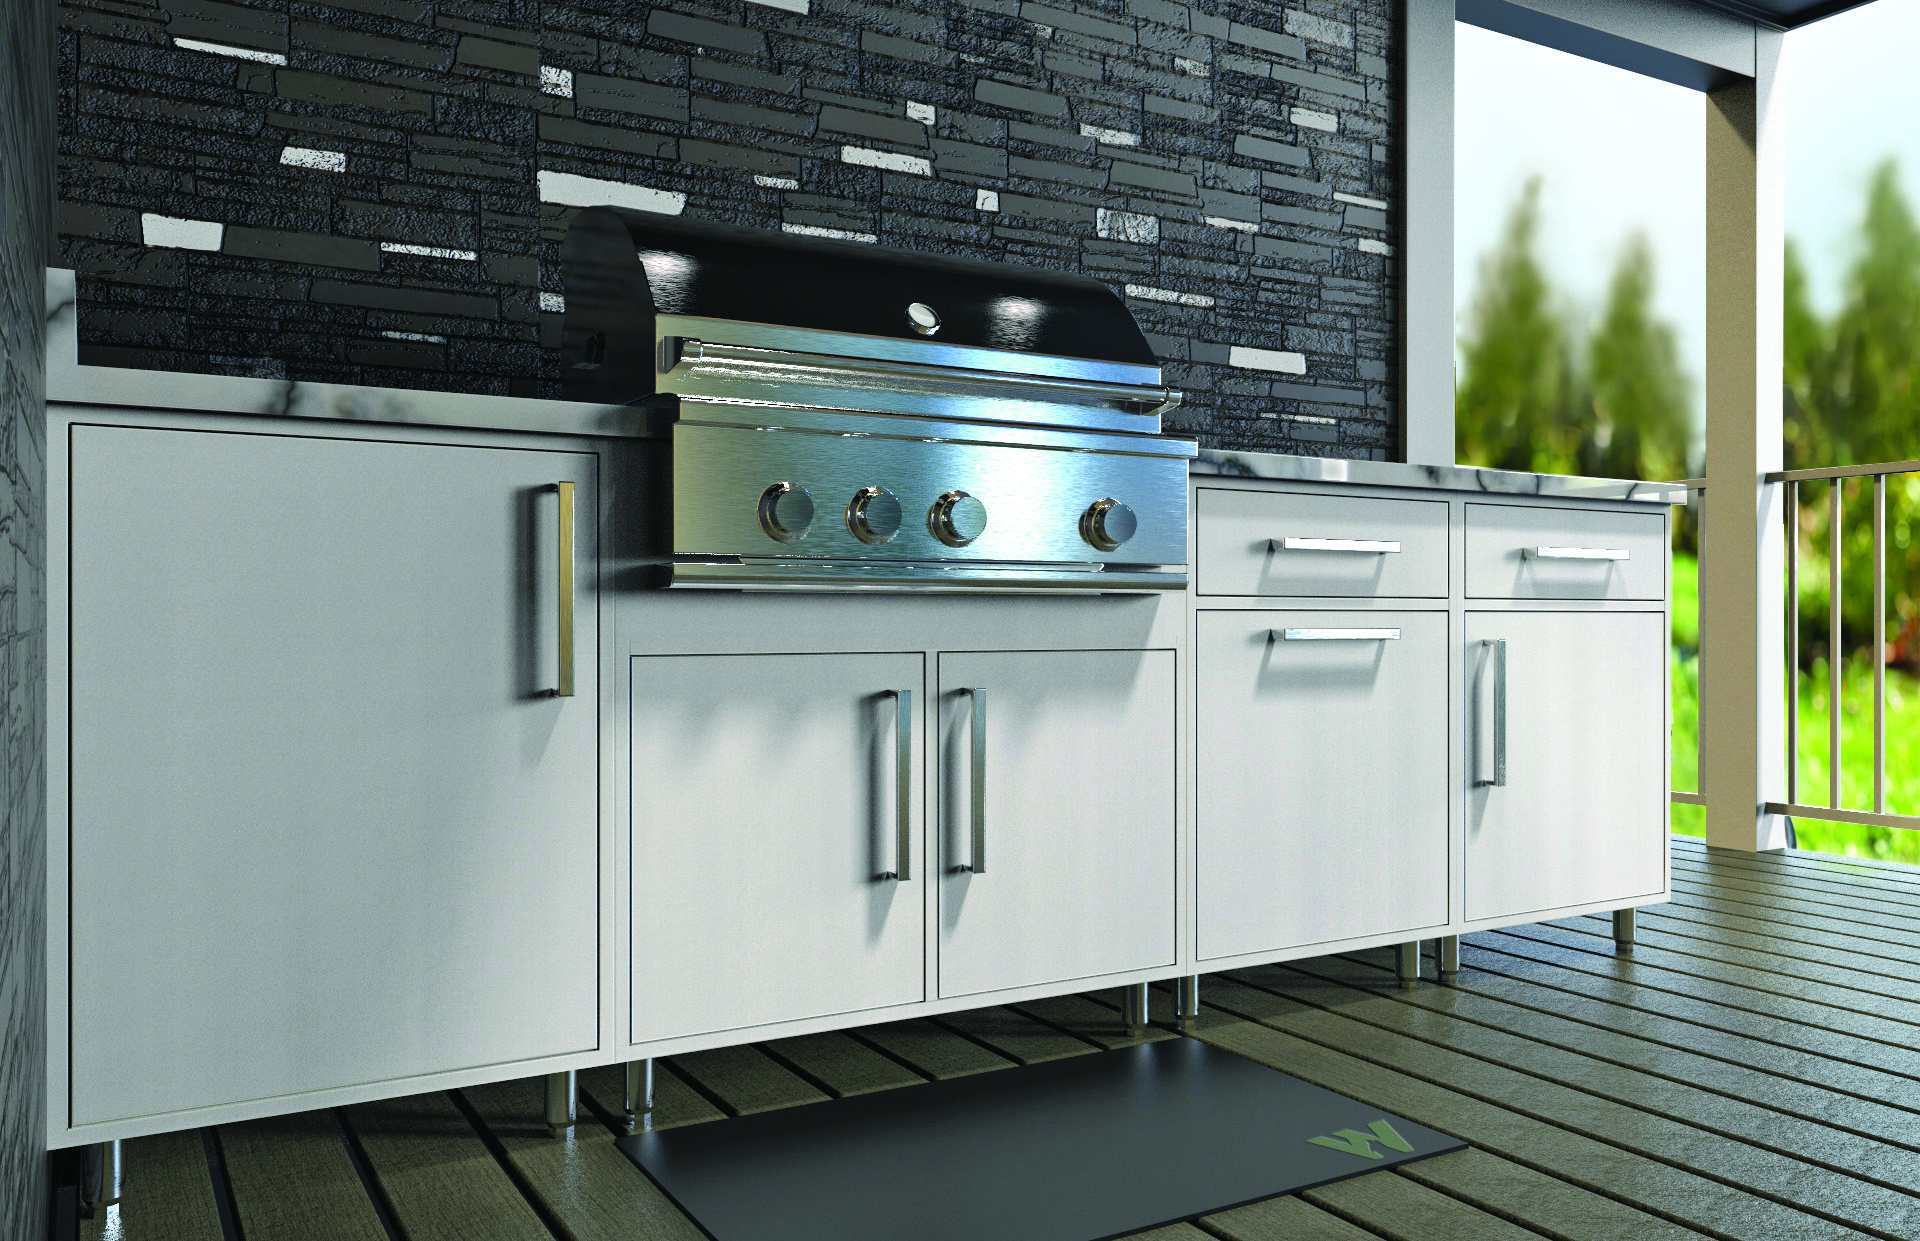 Wolf Home Products Announced The Launch Of Wolf Endurance Outdoor Cabinetry,  A New Durable, Lightweight Product That Will Be Available Immediately In  All Of ...